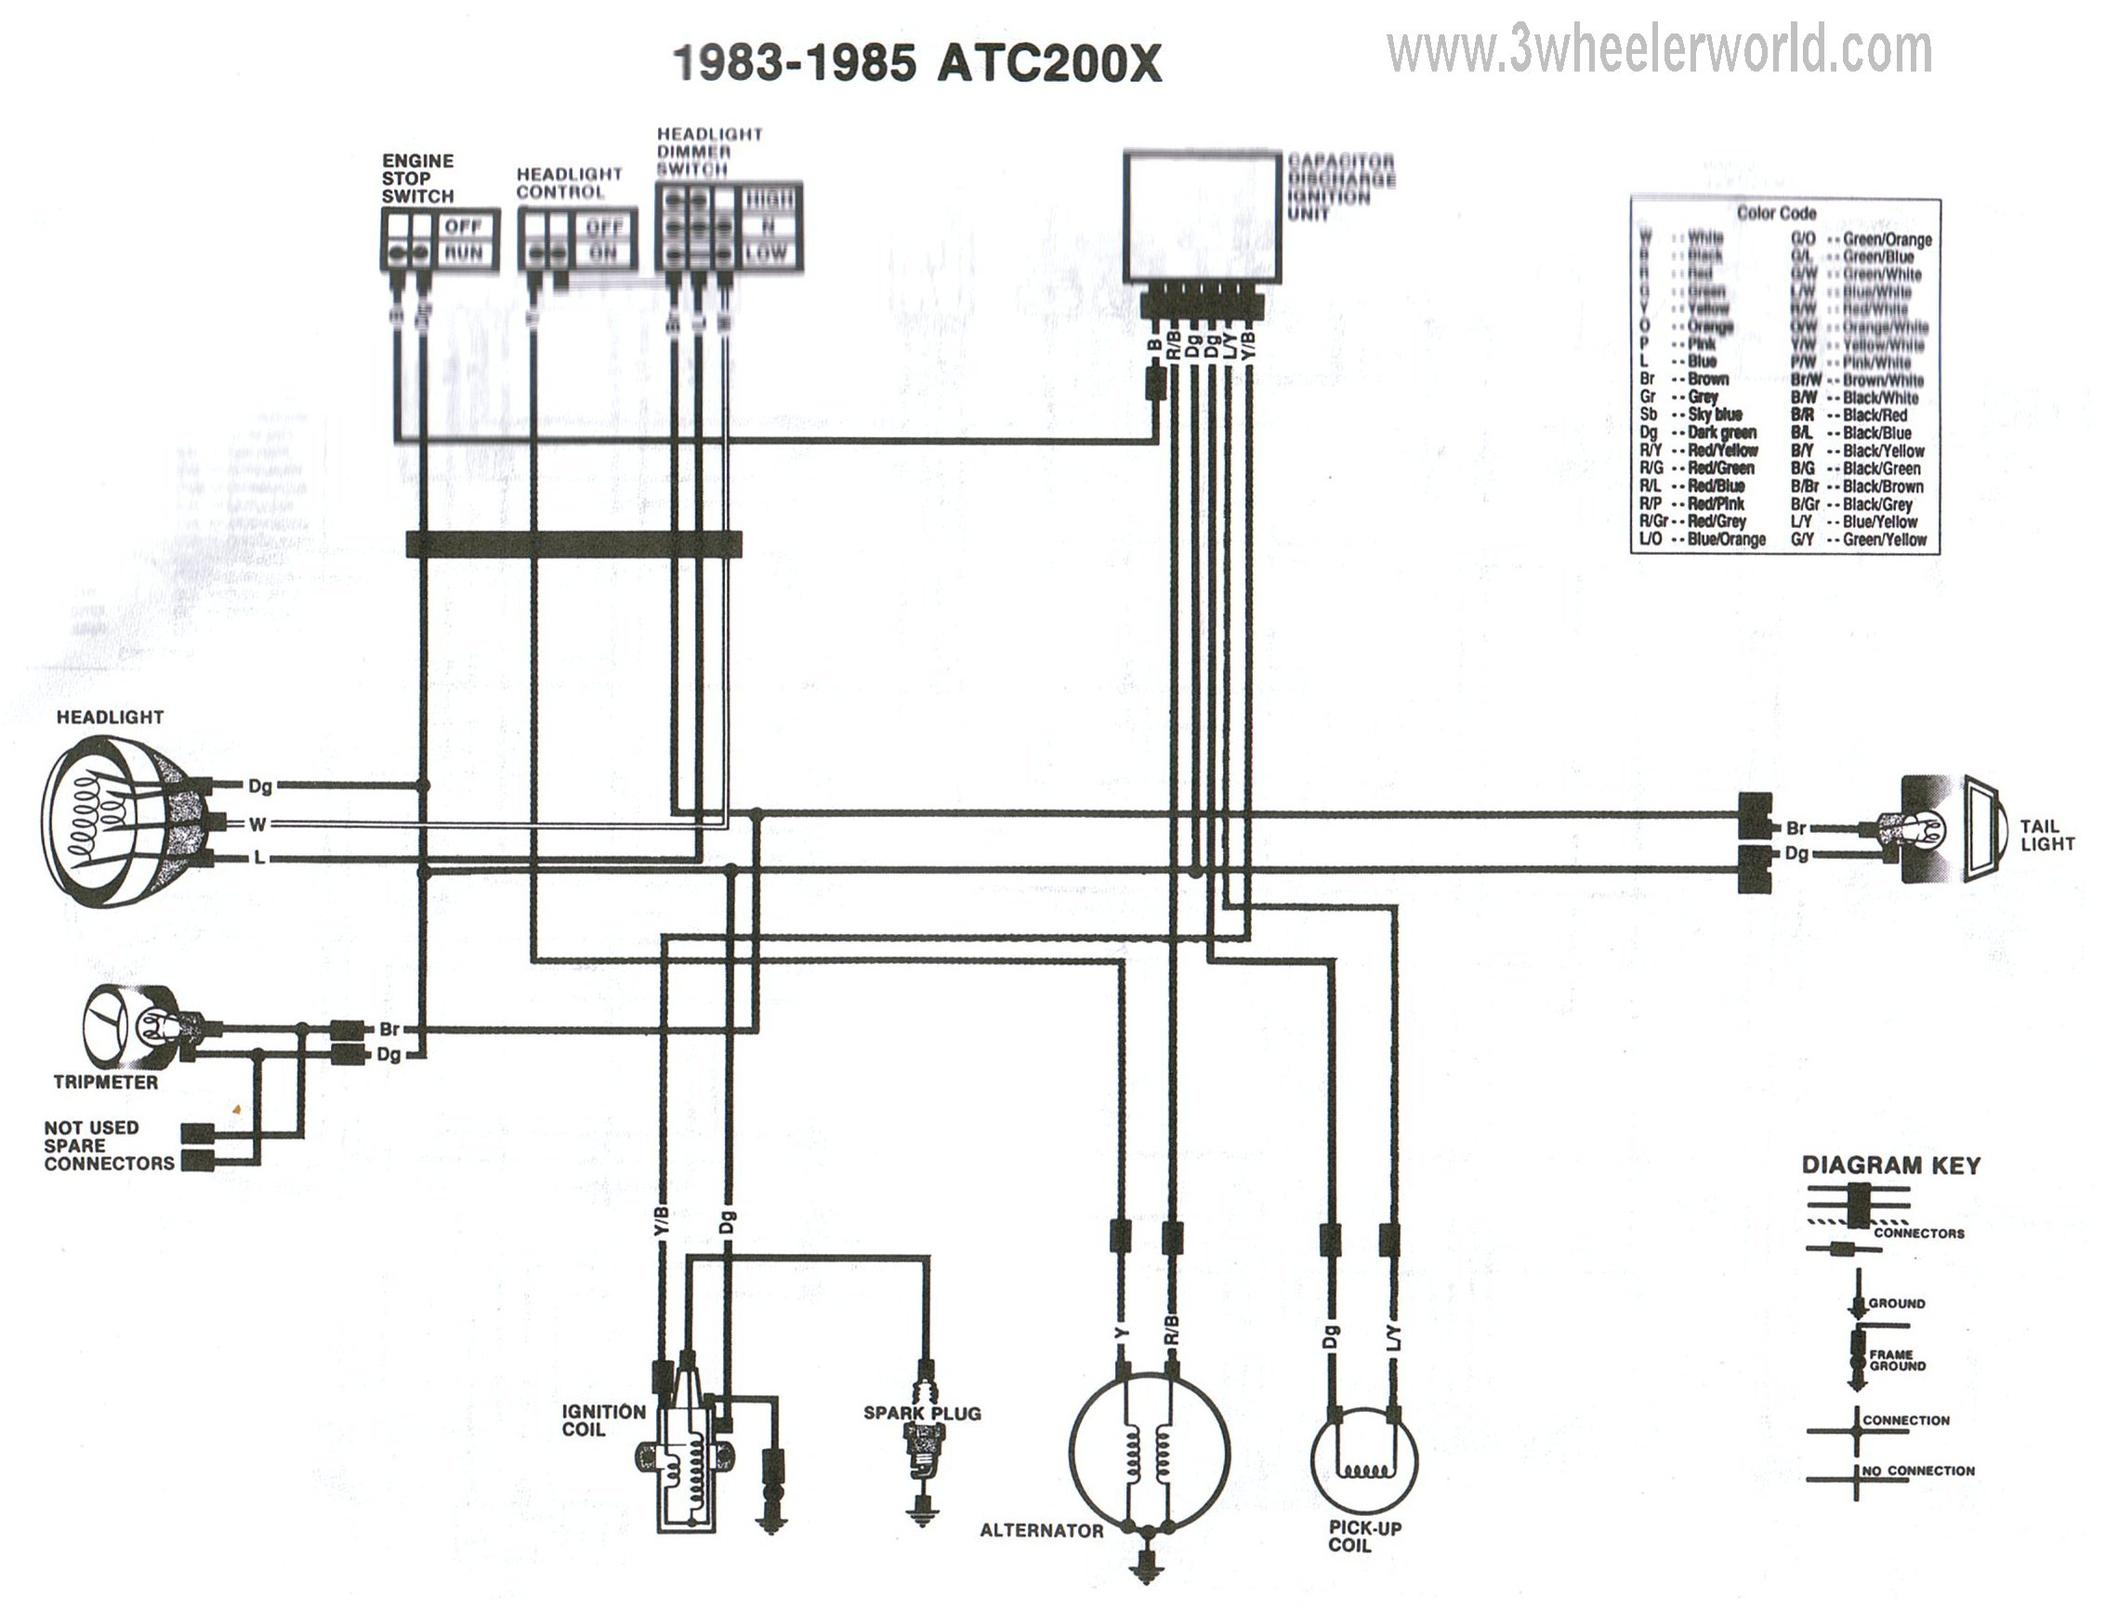 3wheeler world honda atc wiring diagrams article preview